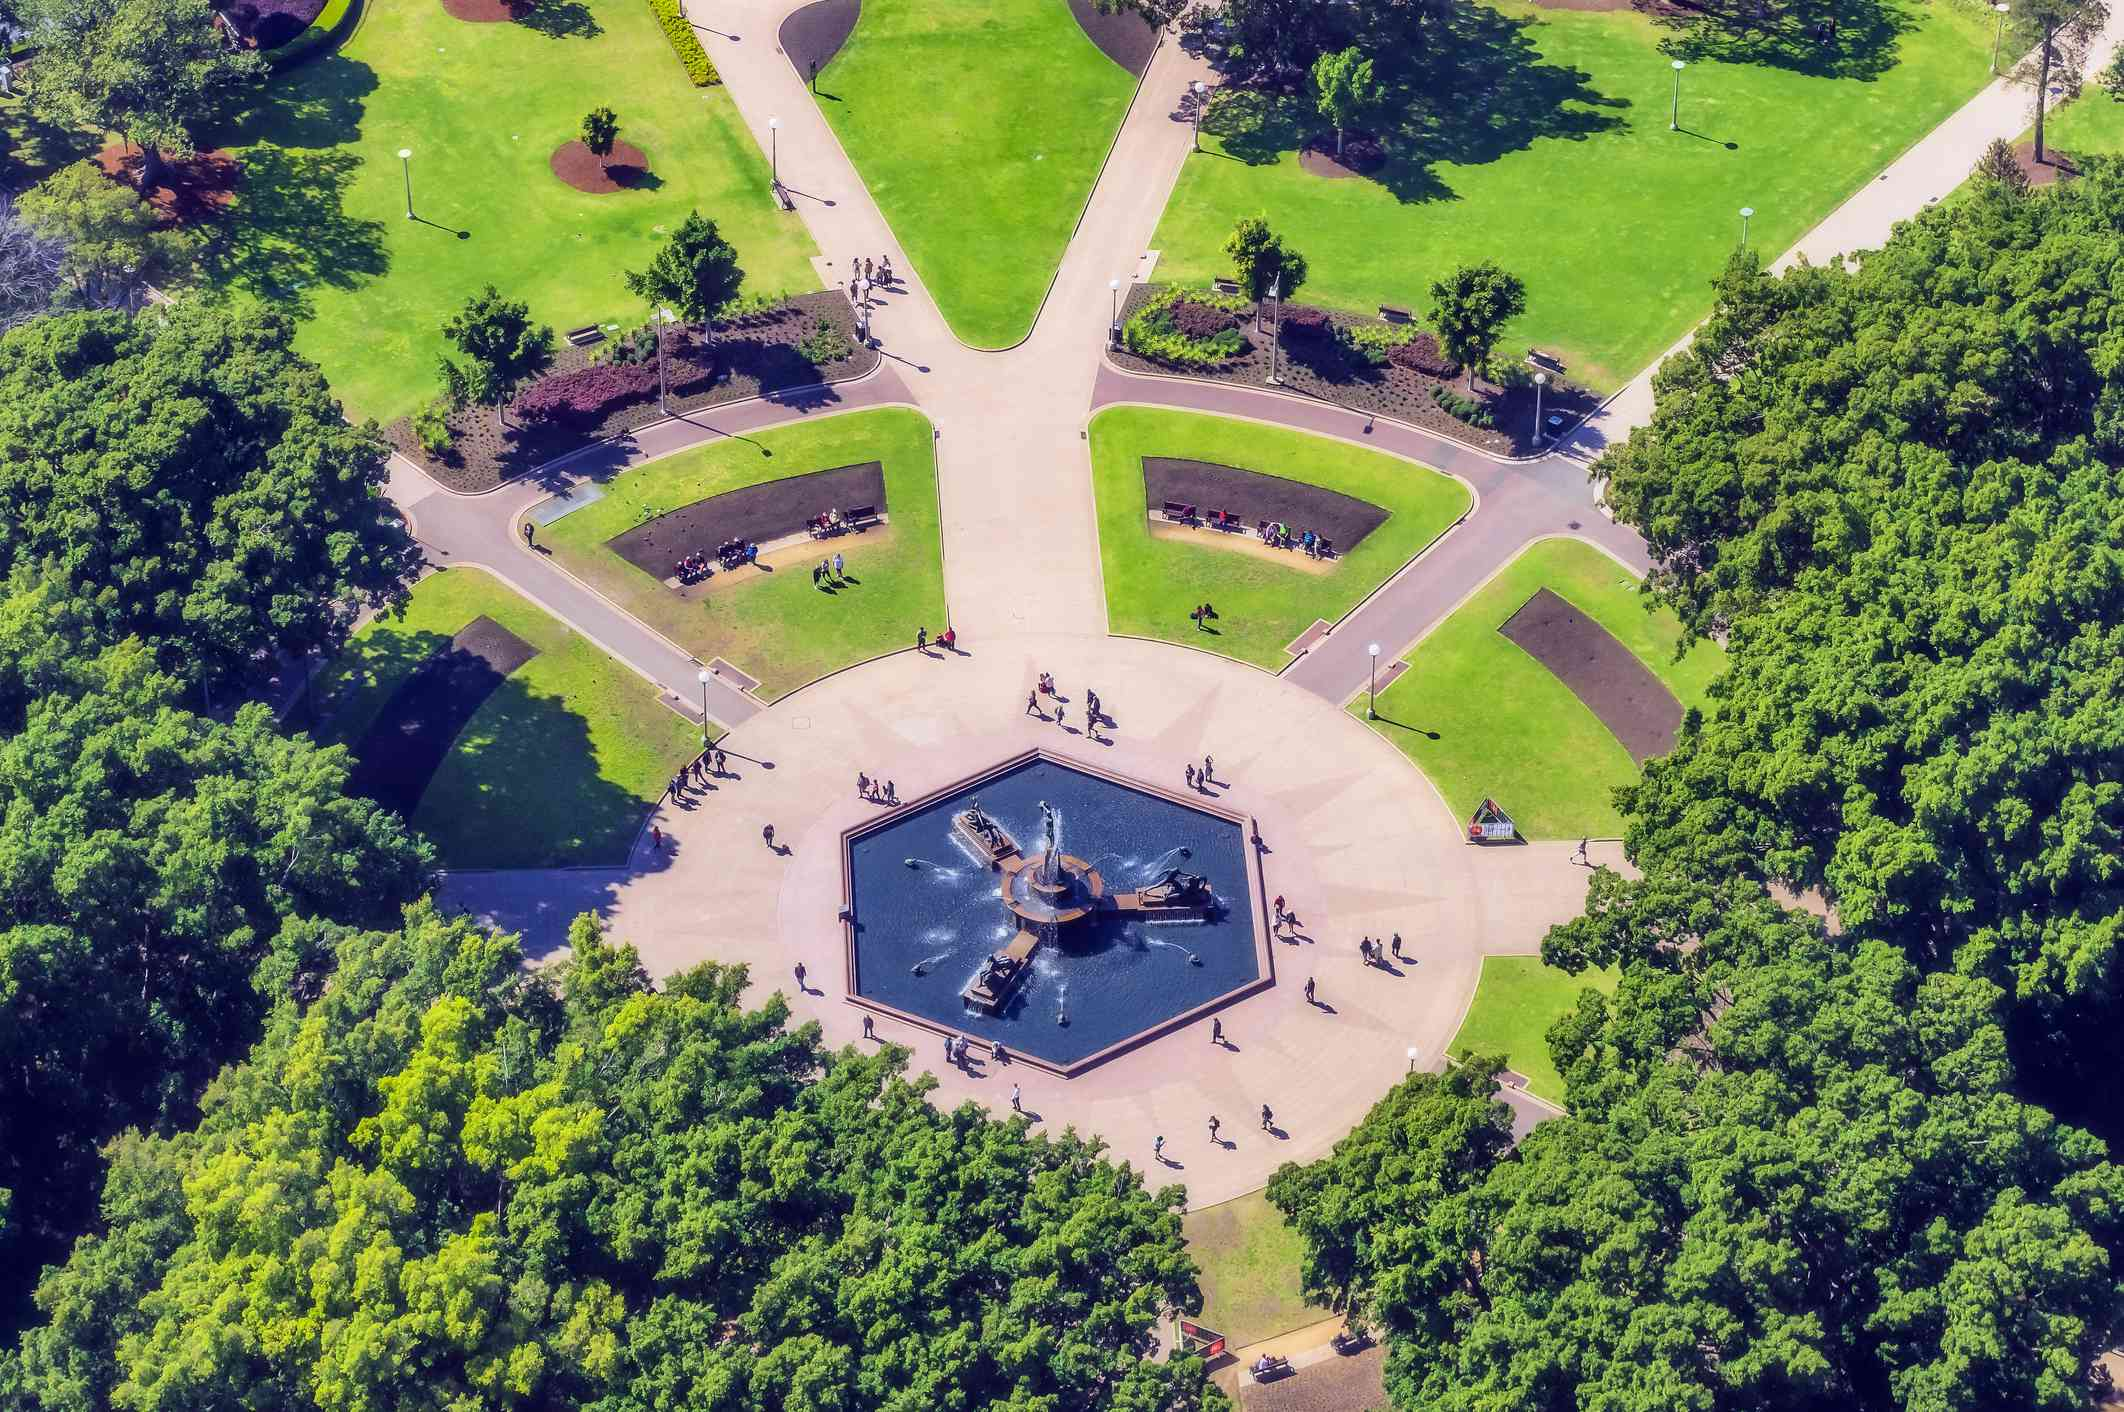 Aerial view of Hyde Park fountain